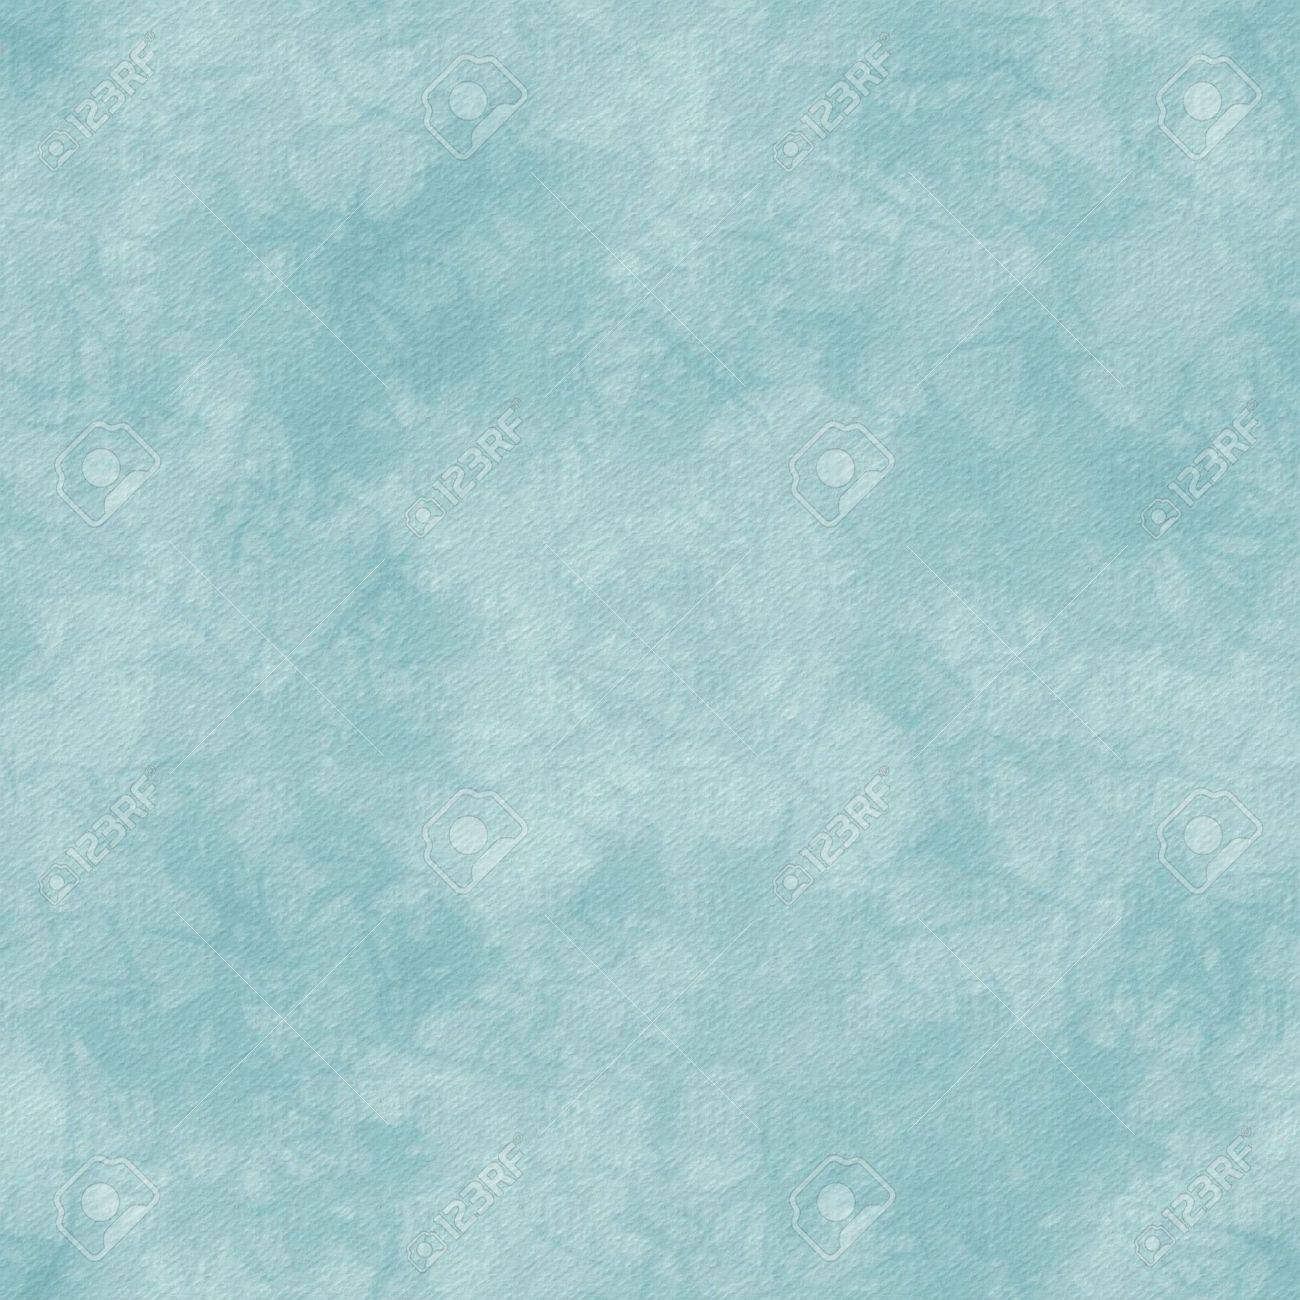 Soft abstract pattern in blue.  Distressed background with paper grain texture. Stock Photo - 5831111